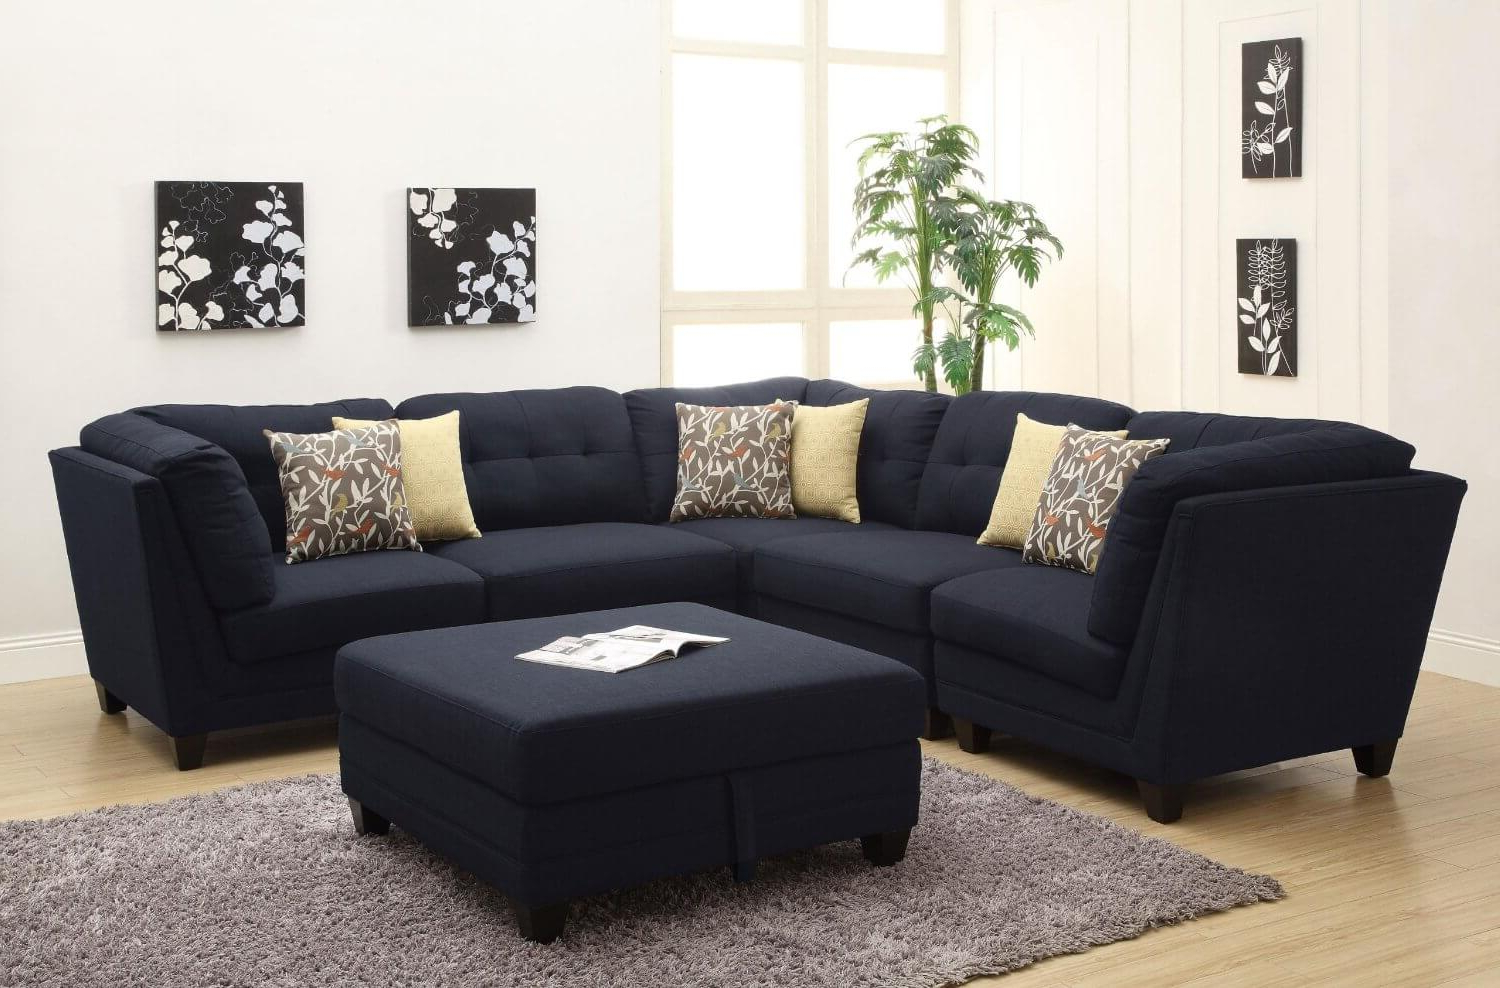 37 Beautiful Sectional Sofas Under $1,000 For Popular Dream Navy 3 Piece Modular Sofas (View 4 of 20)